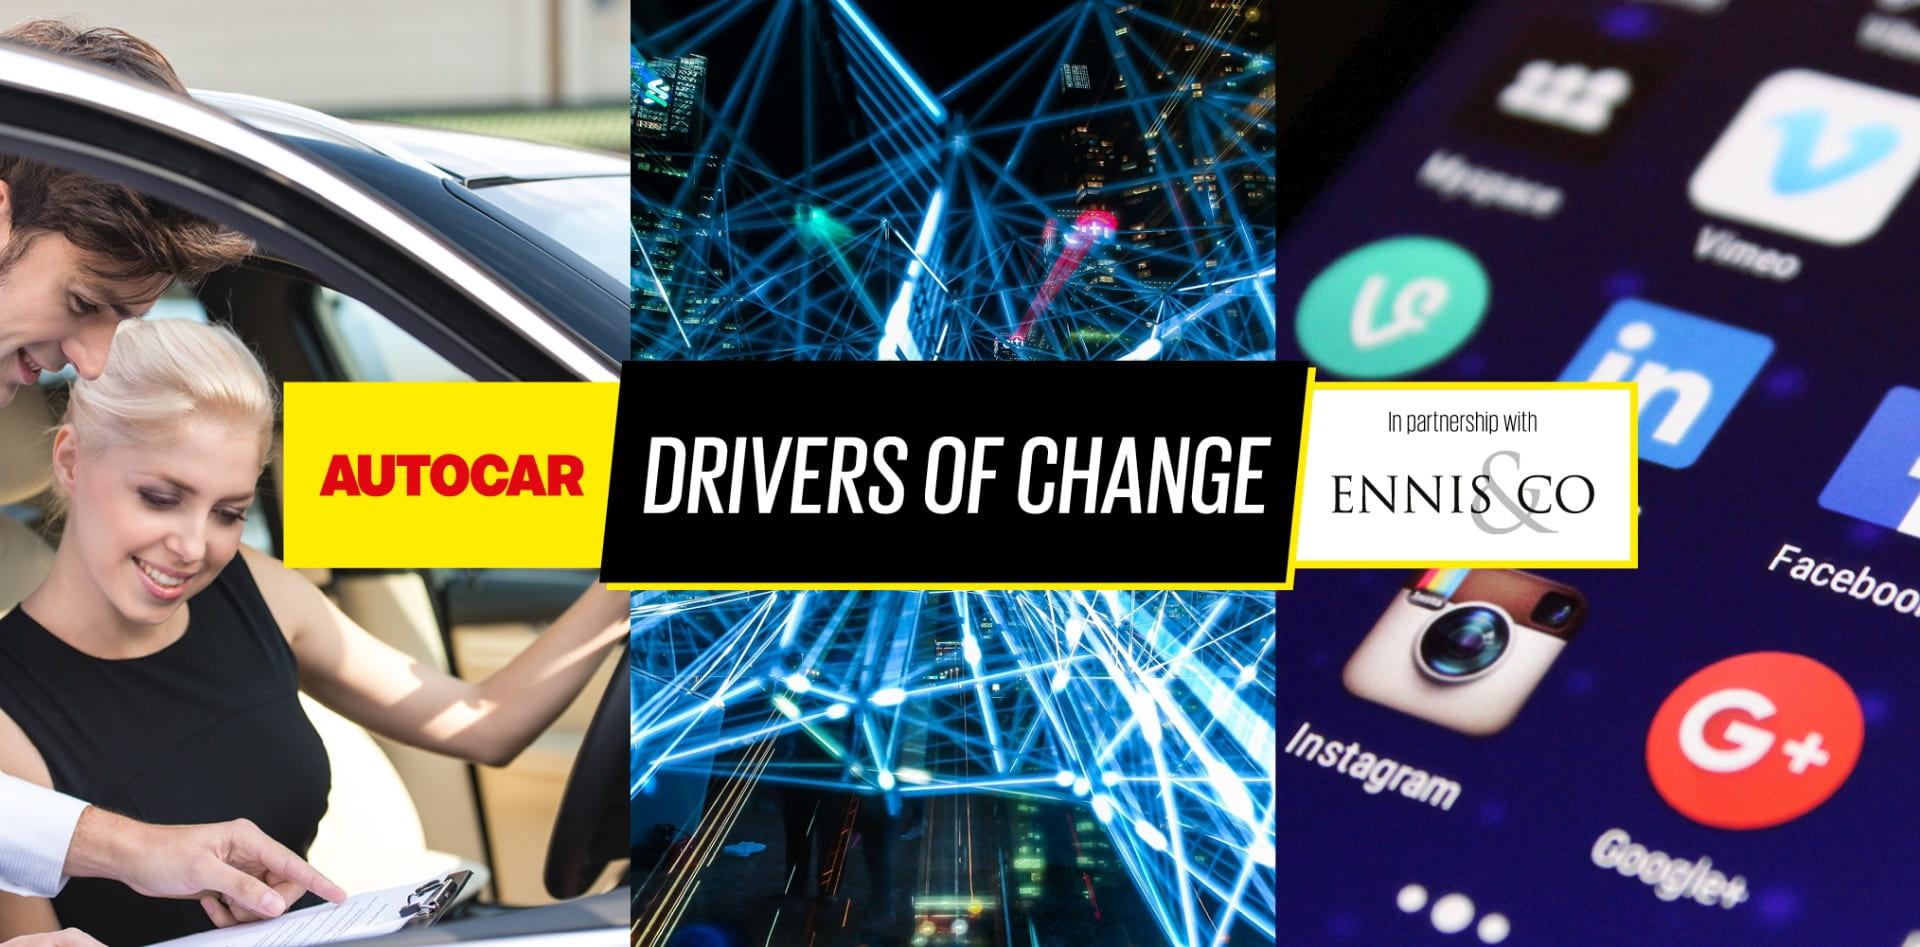 Drivers of Change promotional image